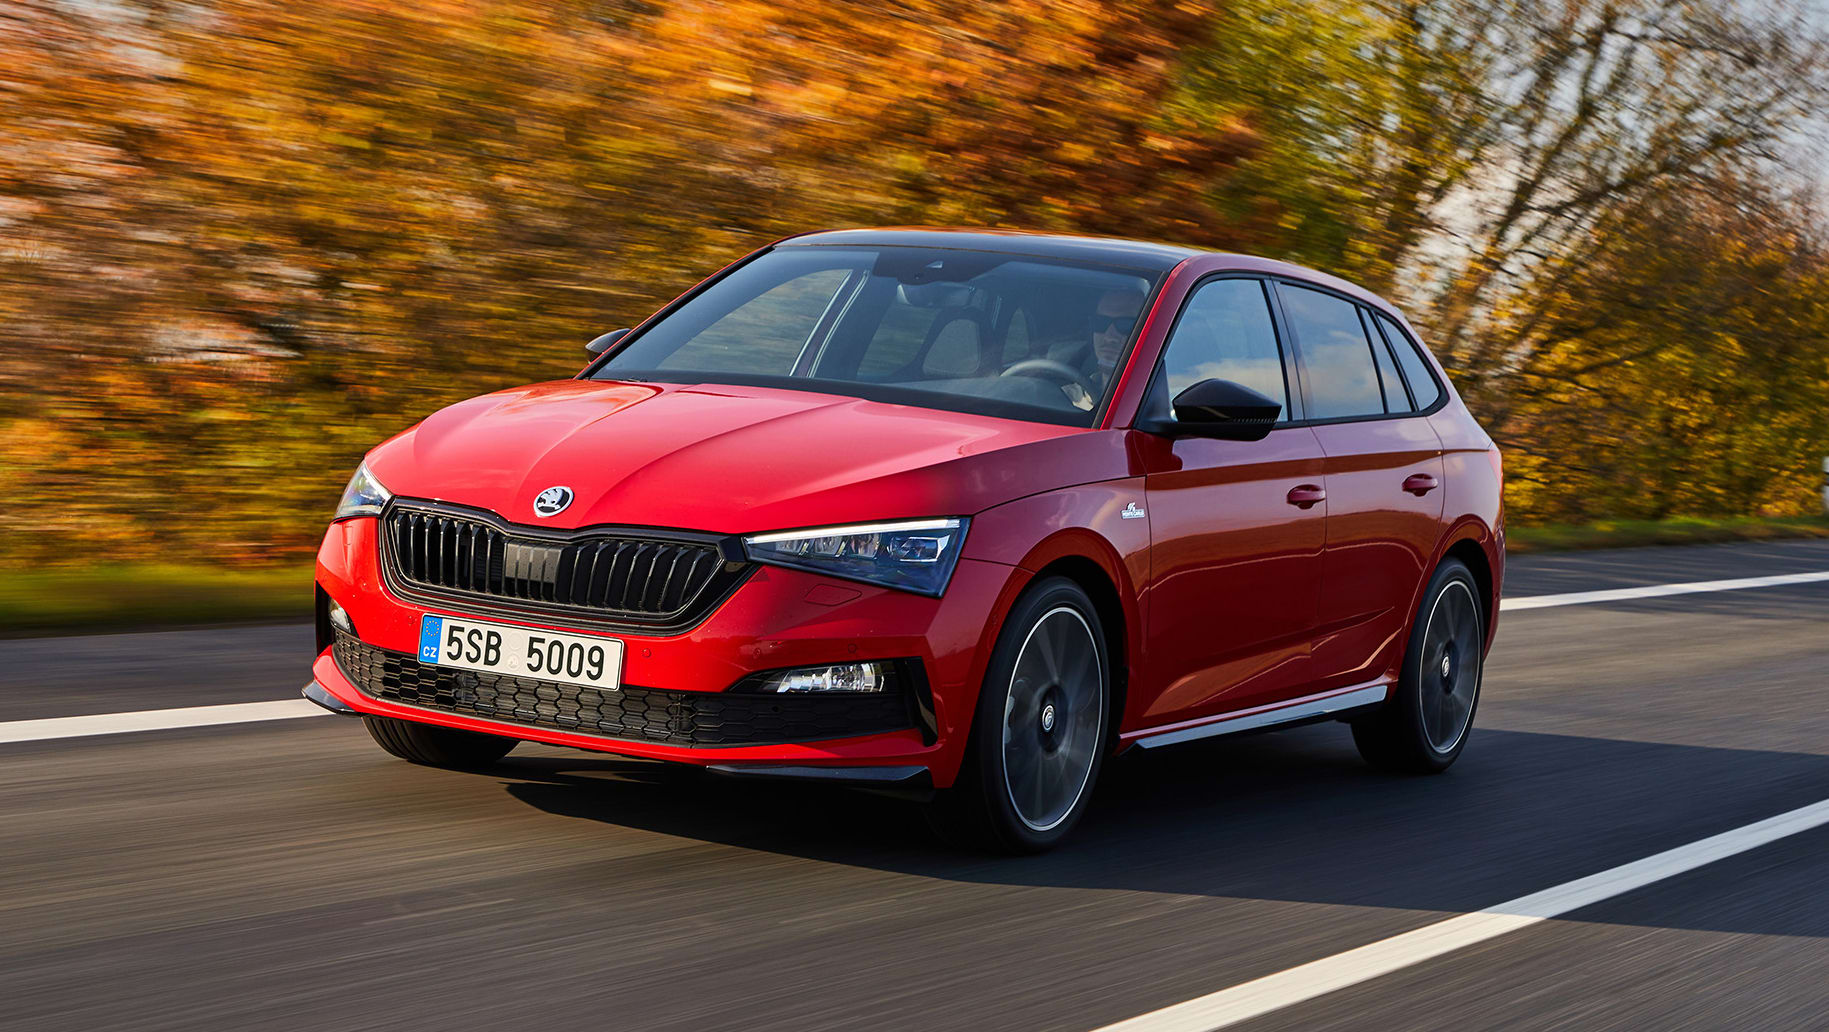 New Skoda Scala 2020 Pricing And Specs Detailed European Toyota Corolla Rival Arrives With High Spec Base Variant Car News Carsguide